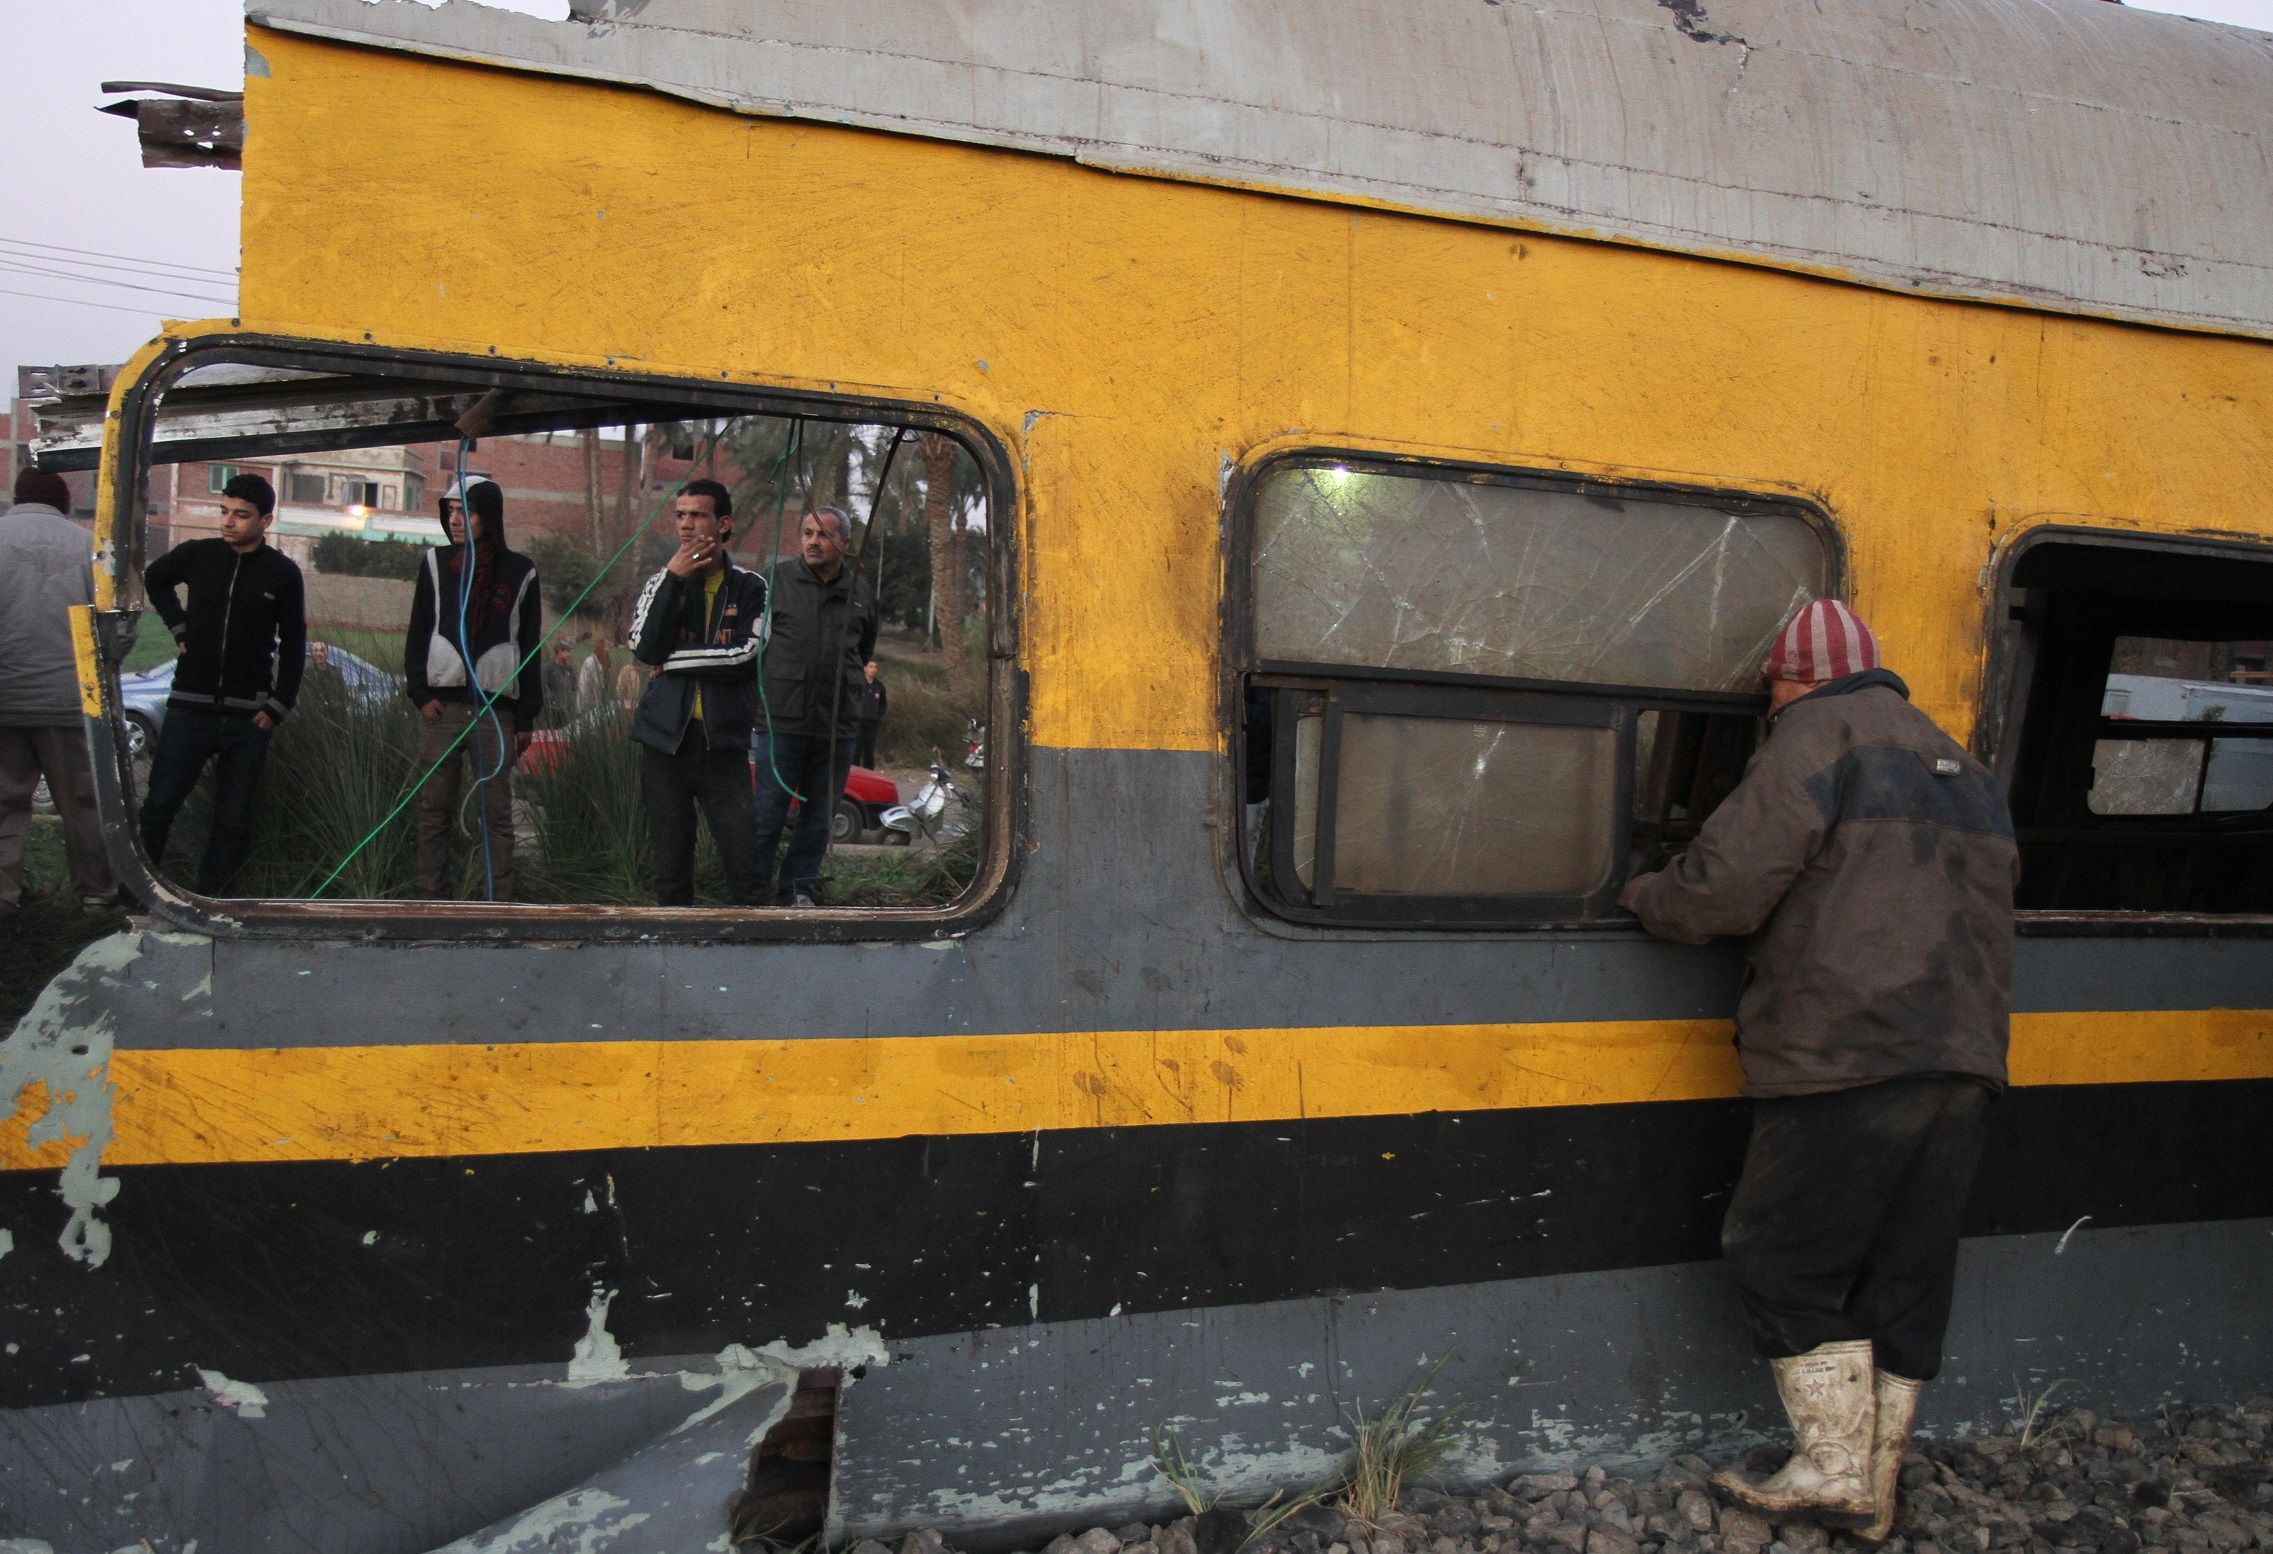 28 killed in Egypt train crash, 80 injured